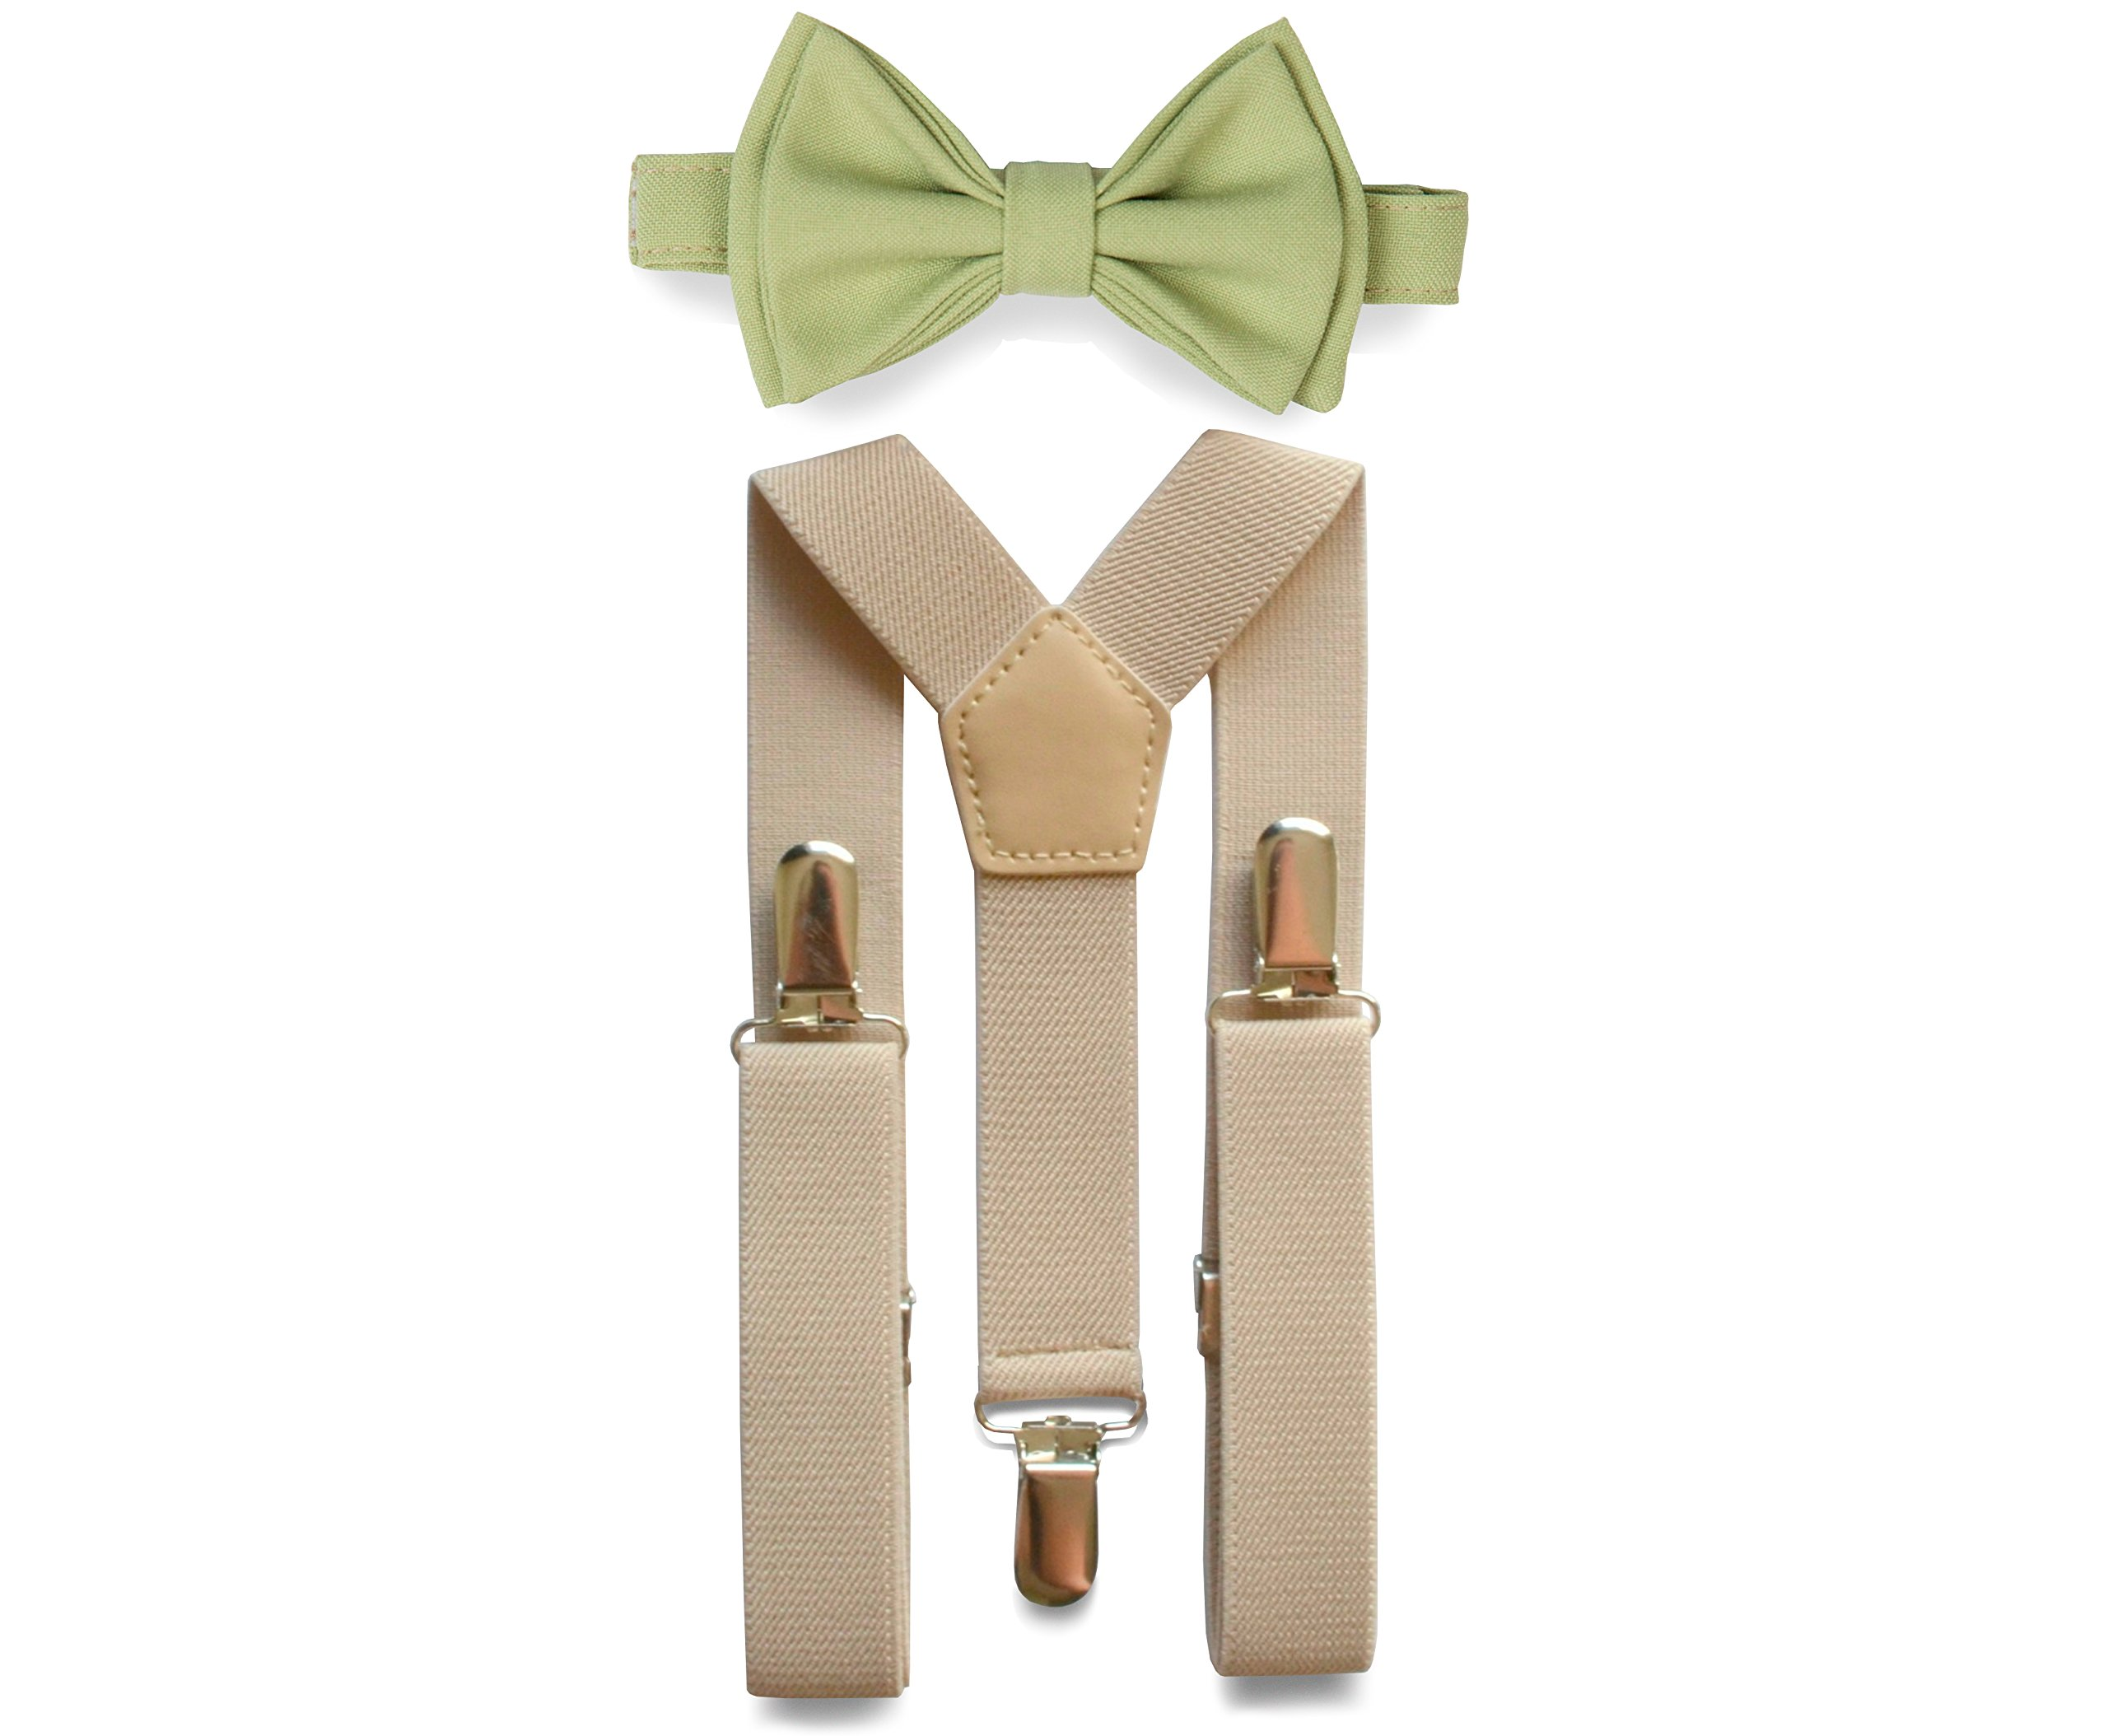 Tan Suspenders Bow Tie Set for Baby Toddler Boy Teen Men (3. Boy (7-12 yrs), Tan Suspenders, Sage Bow Tie)